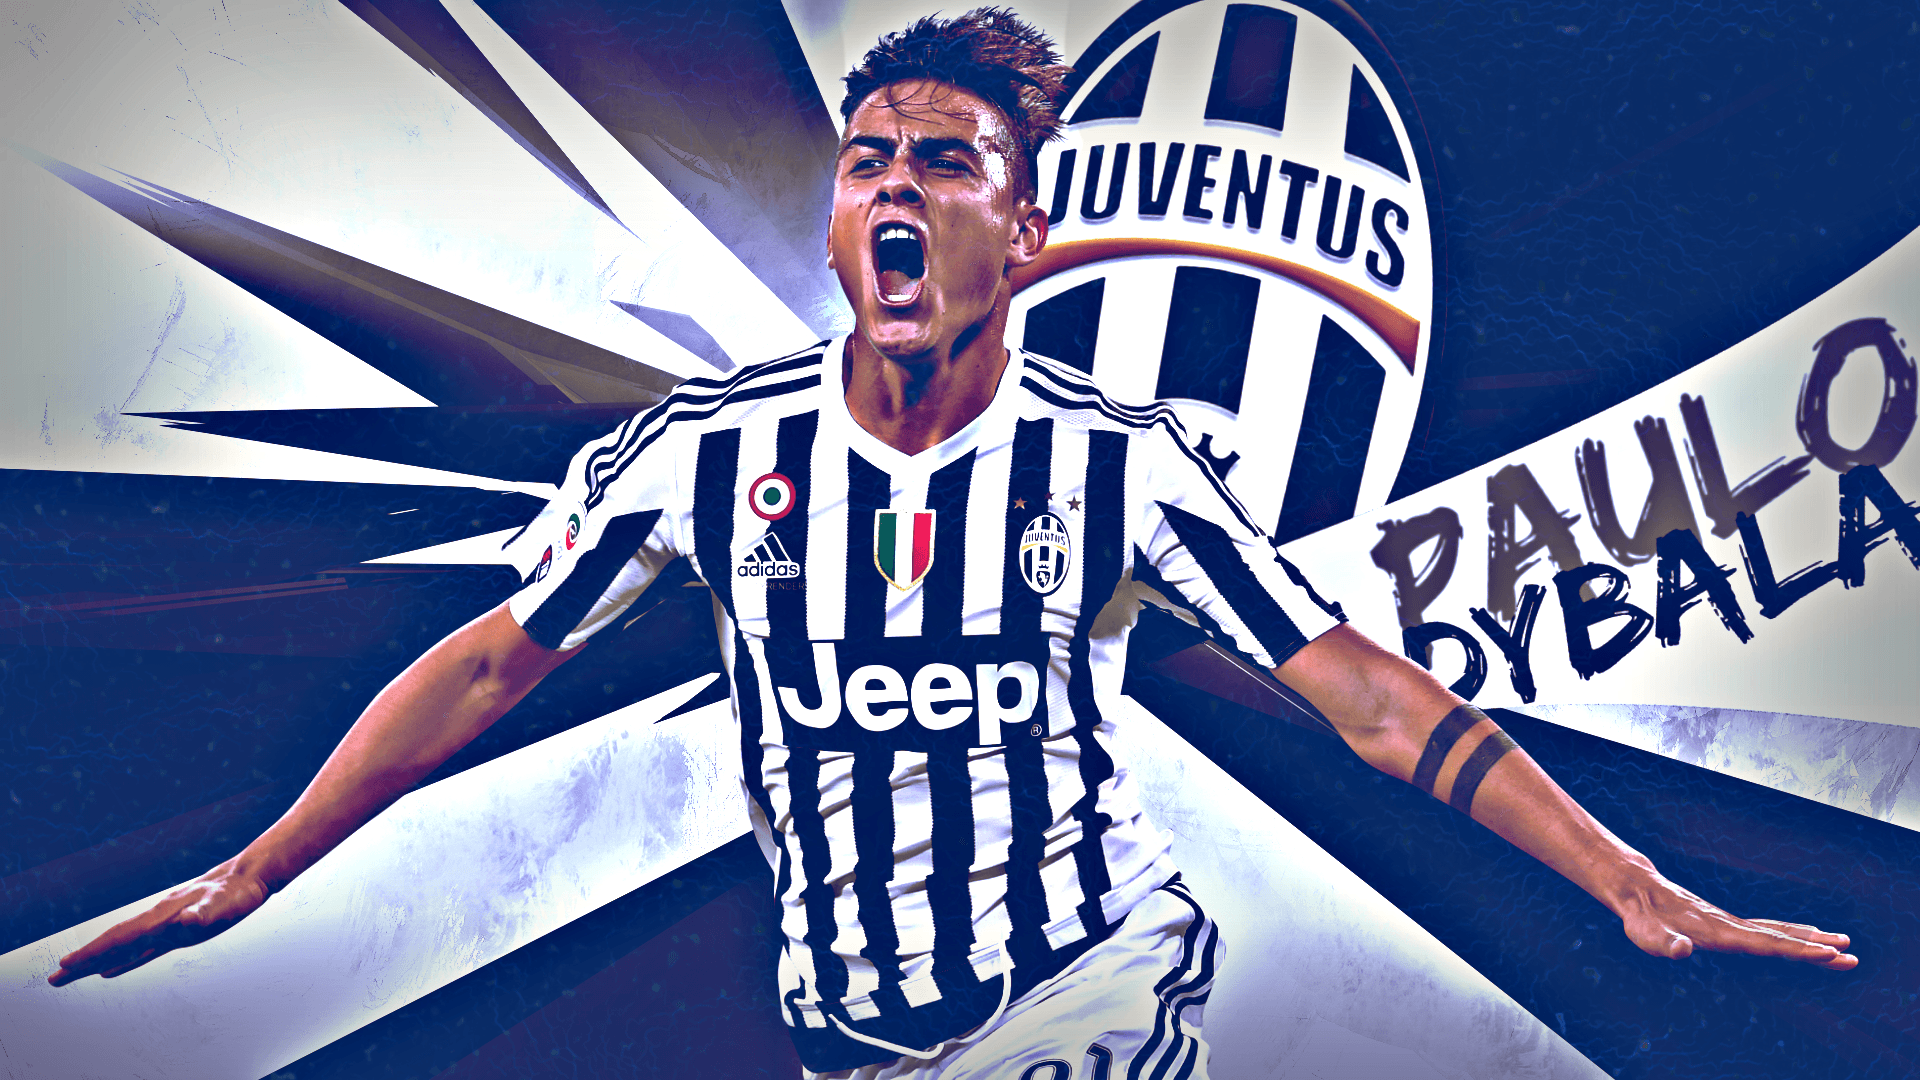 Paulo Dybala Juventus Wallpaper Hd Wallpaper Juventus Wallpapers